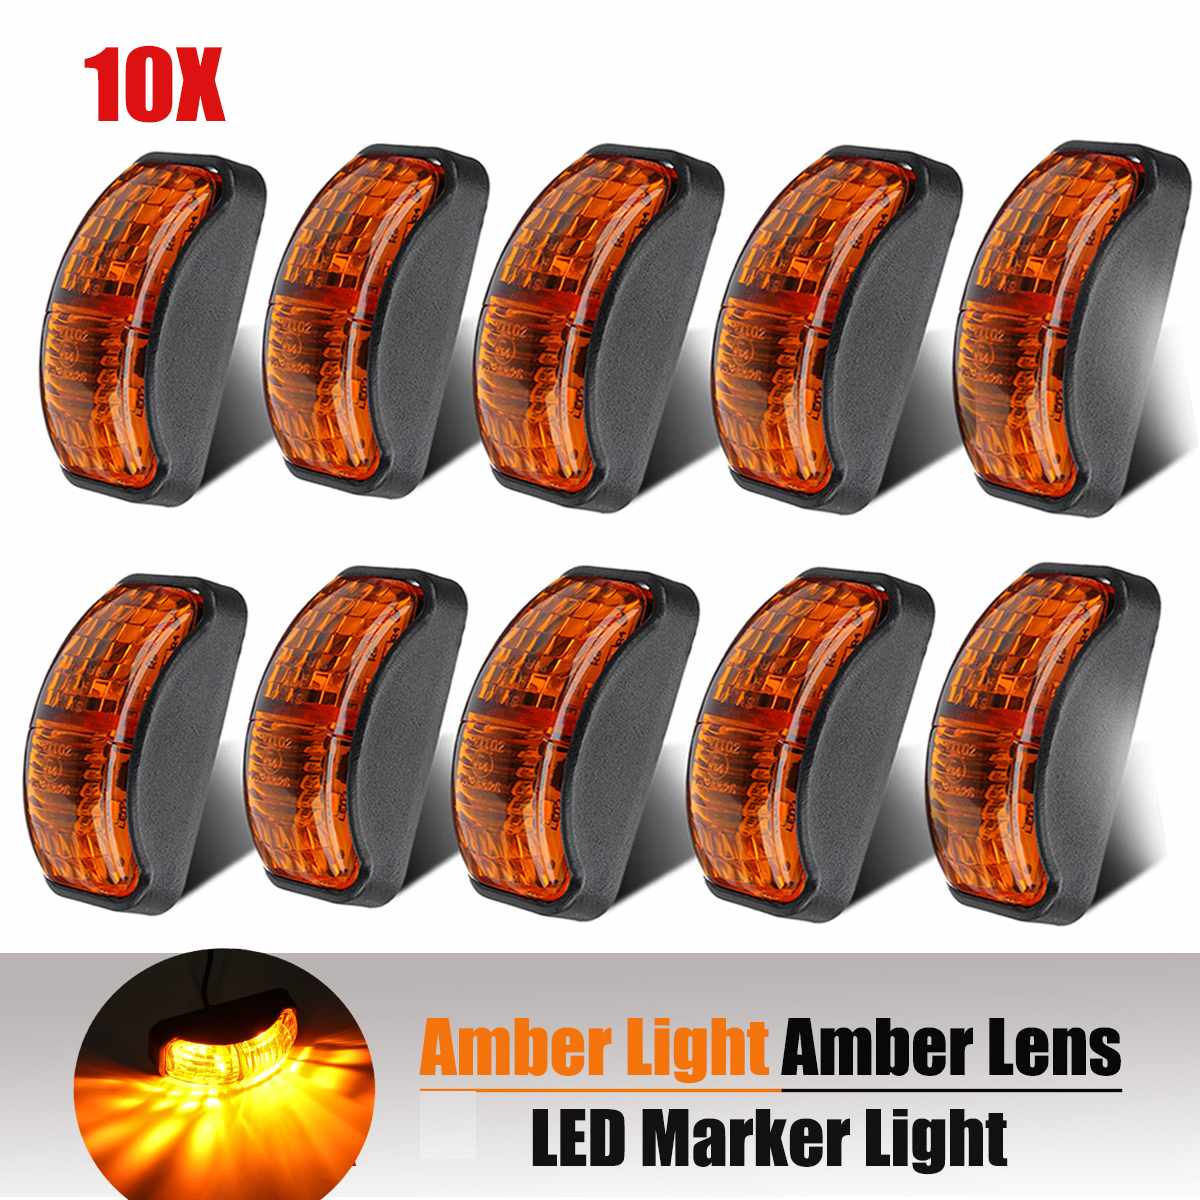 10pcs 12V <font><b>24V</b></font> <font><b>LED</b></font> Car <font><b>Truck</b></font> Side Marker Light Clearance <font><b>Lamp</b></font> Signal Indicator Light for Trailer Van Lorry Bus Amber image